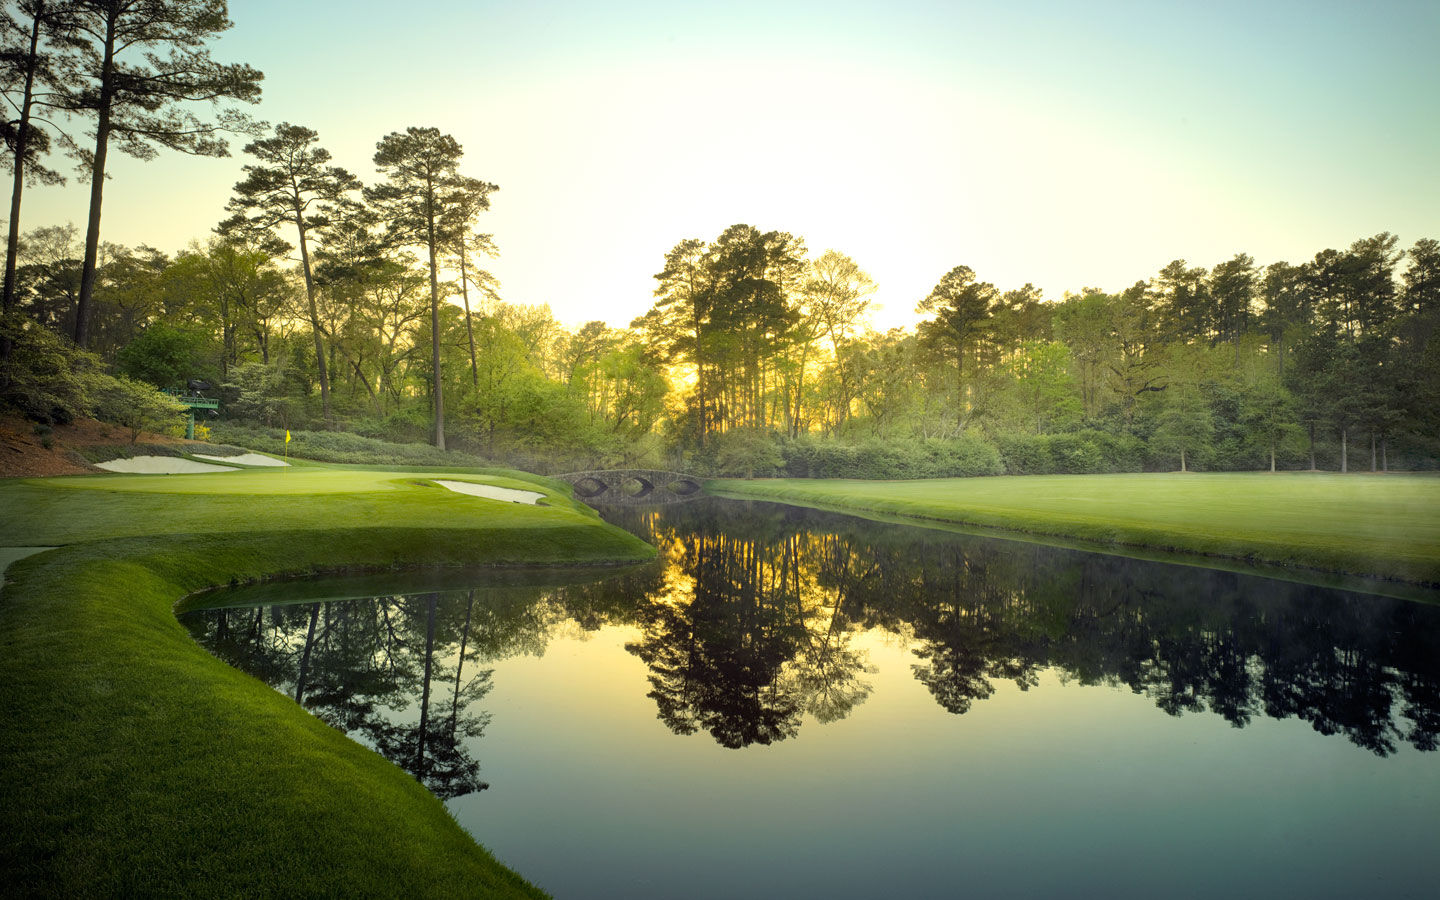 Augusta national golf club cover picture